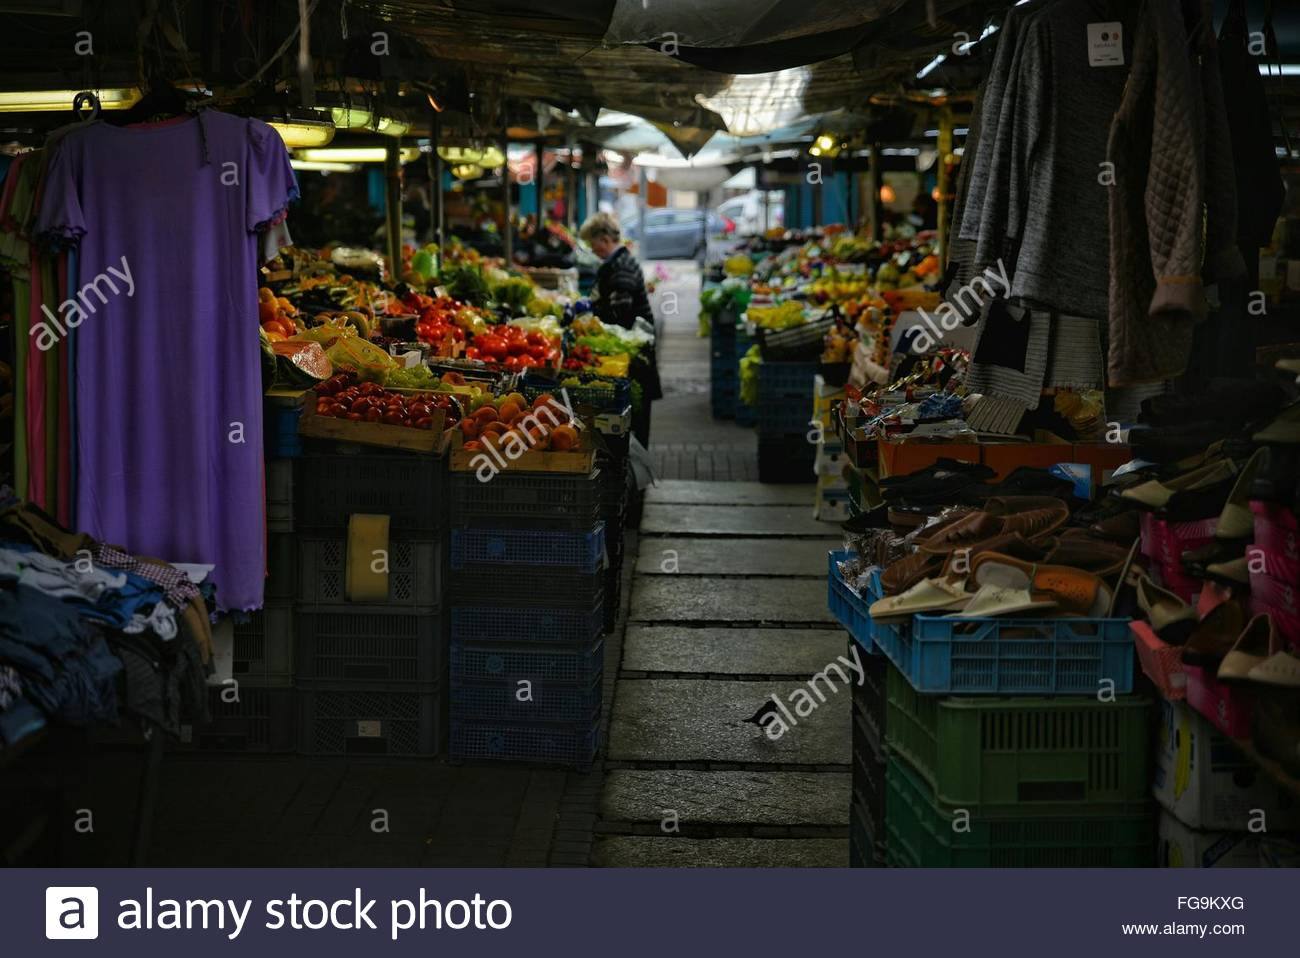 Clothes And Groceries At Market - Stock Image